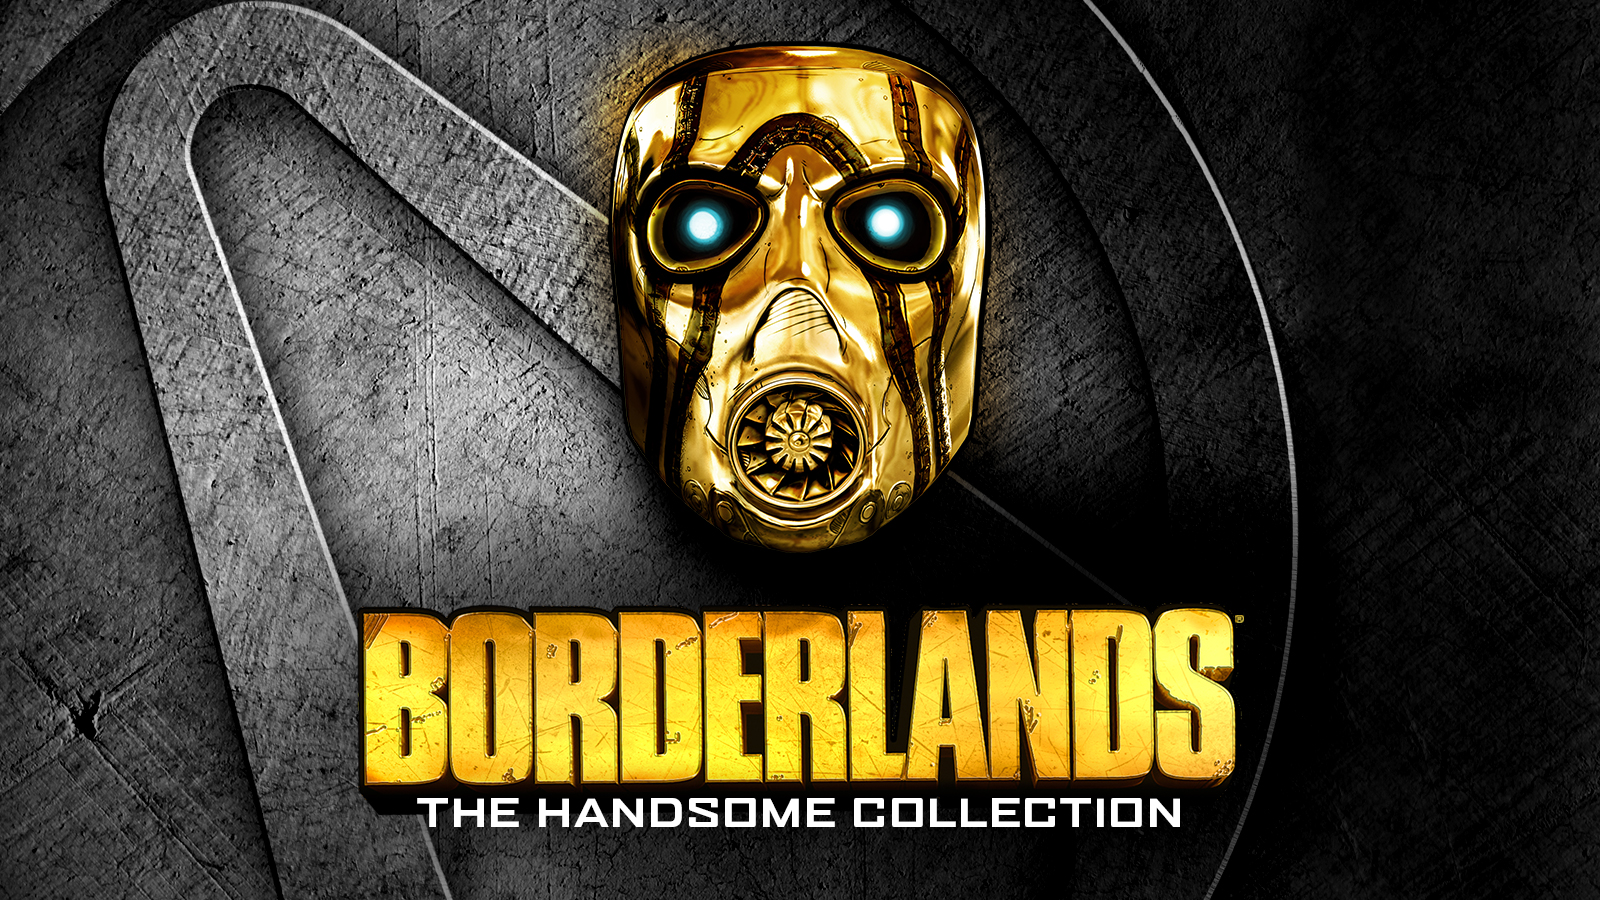 https://media.playstation.com/is/image/SCEA/borderlands-the-handsome-collection-normal-listing-thumb-01-ps4-us-27feb15?$Icon$